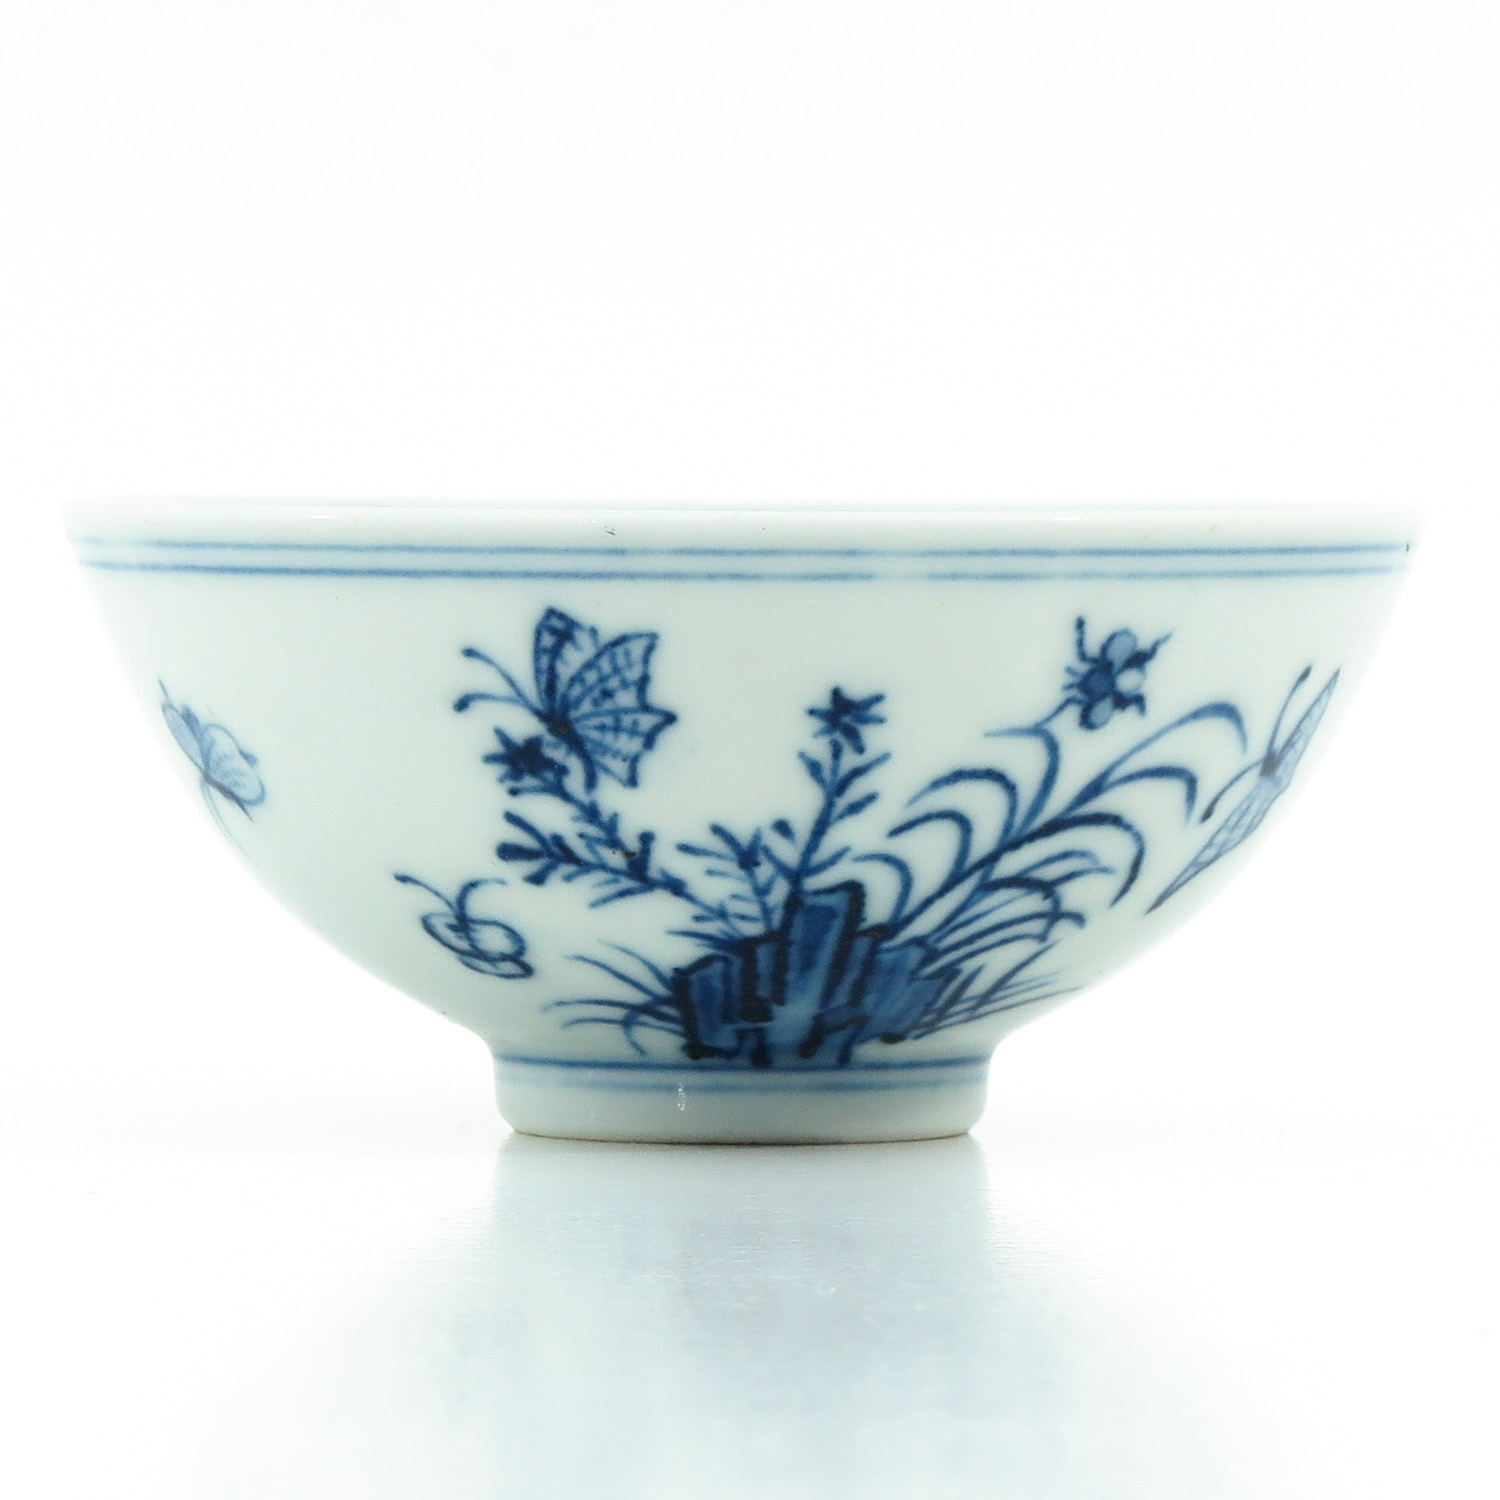 A Blue and White Cup - Image 3 of 9